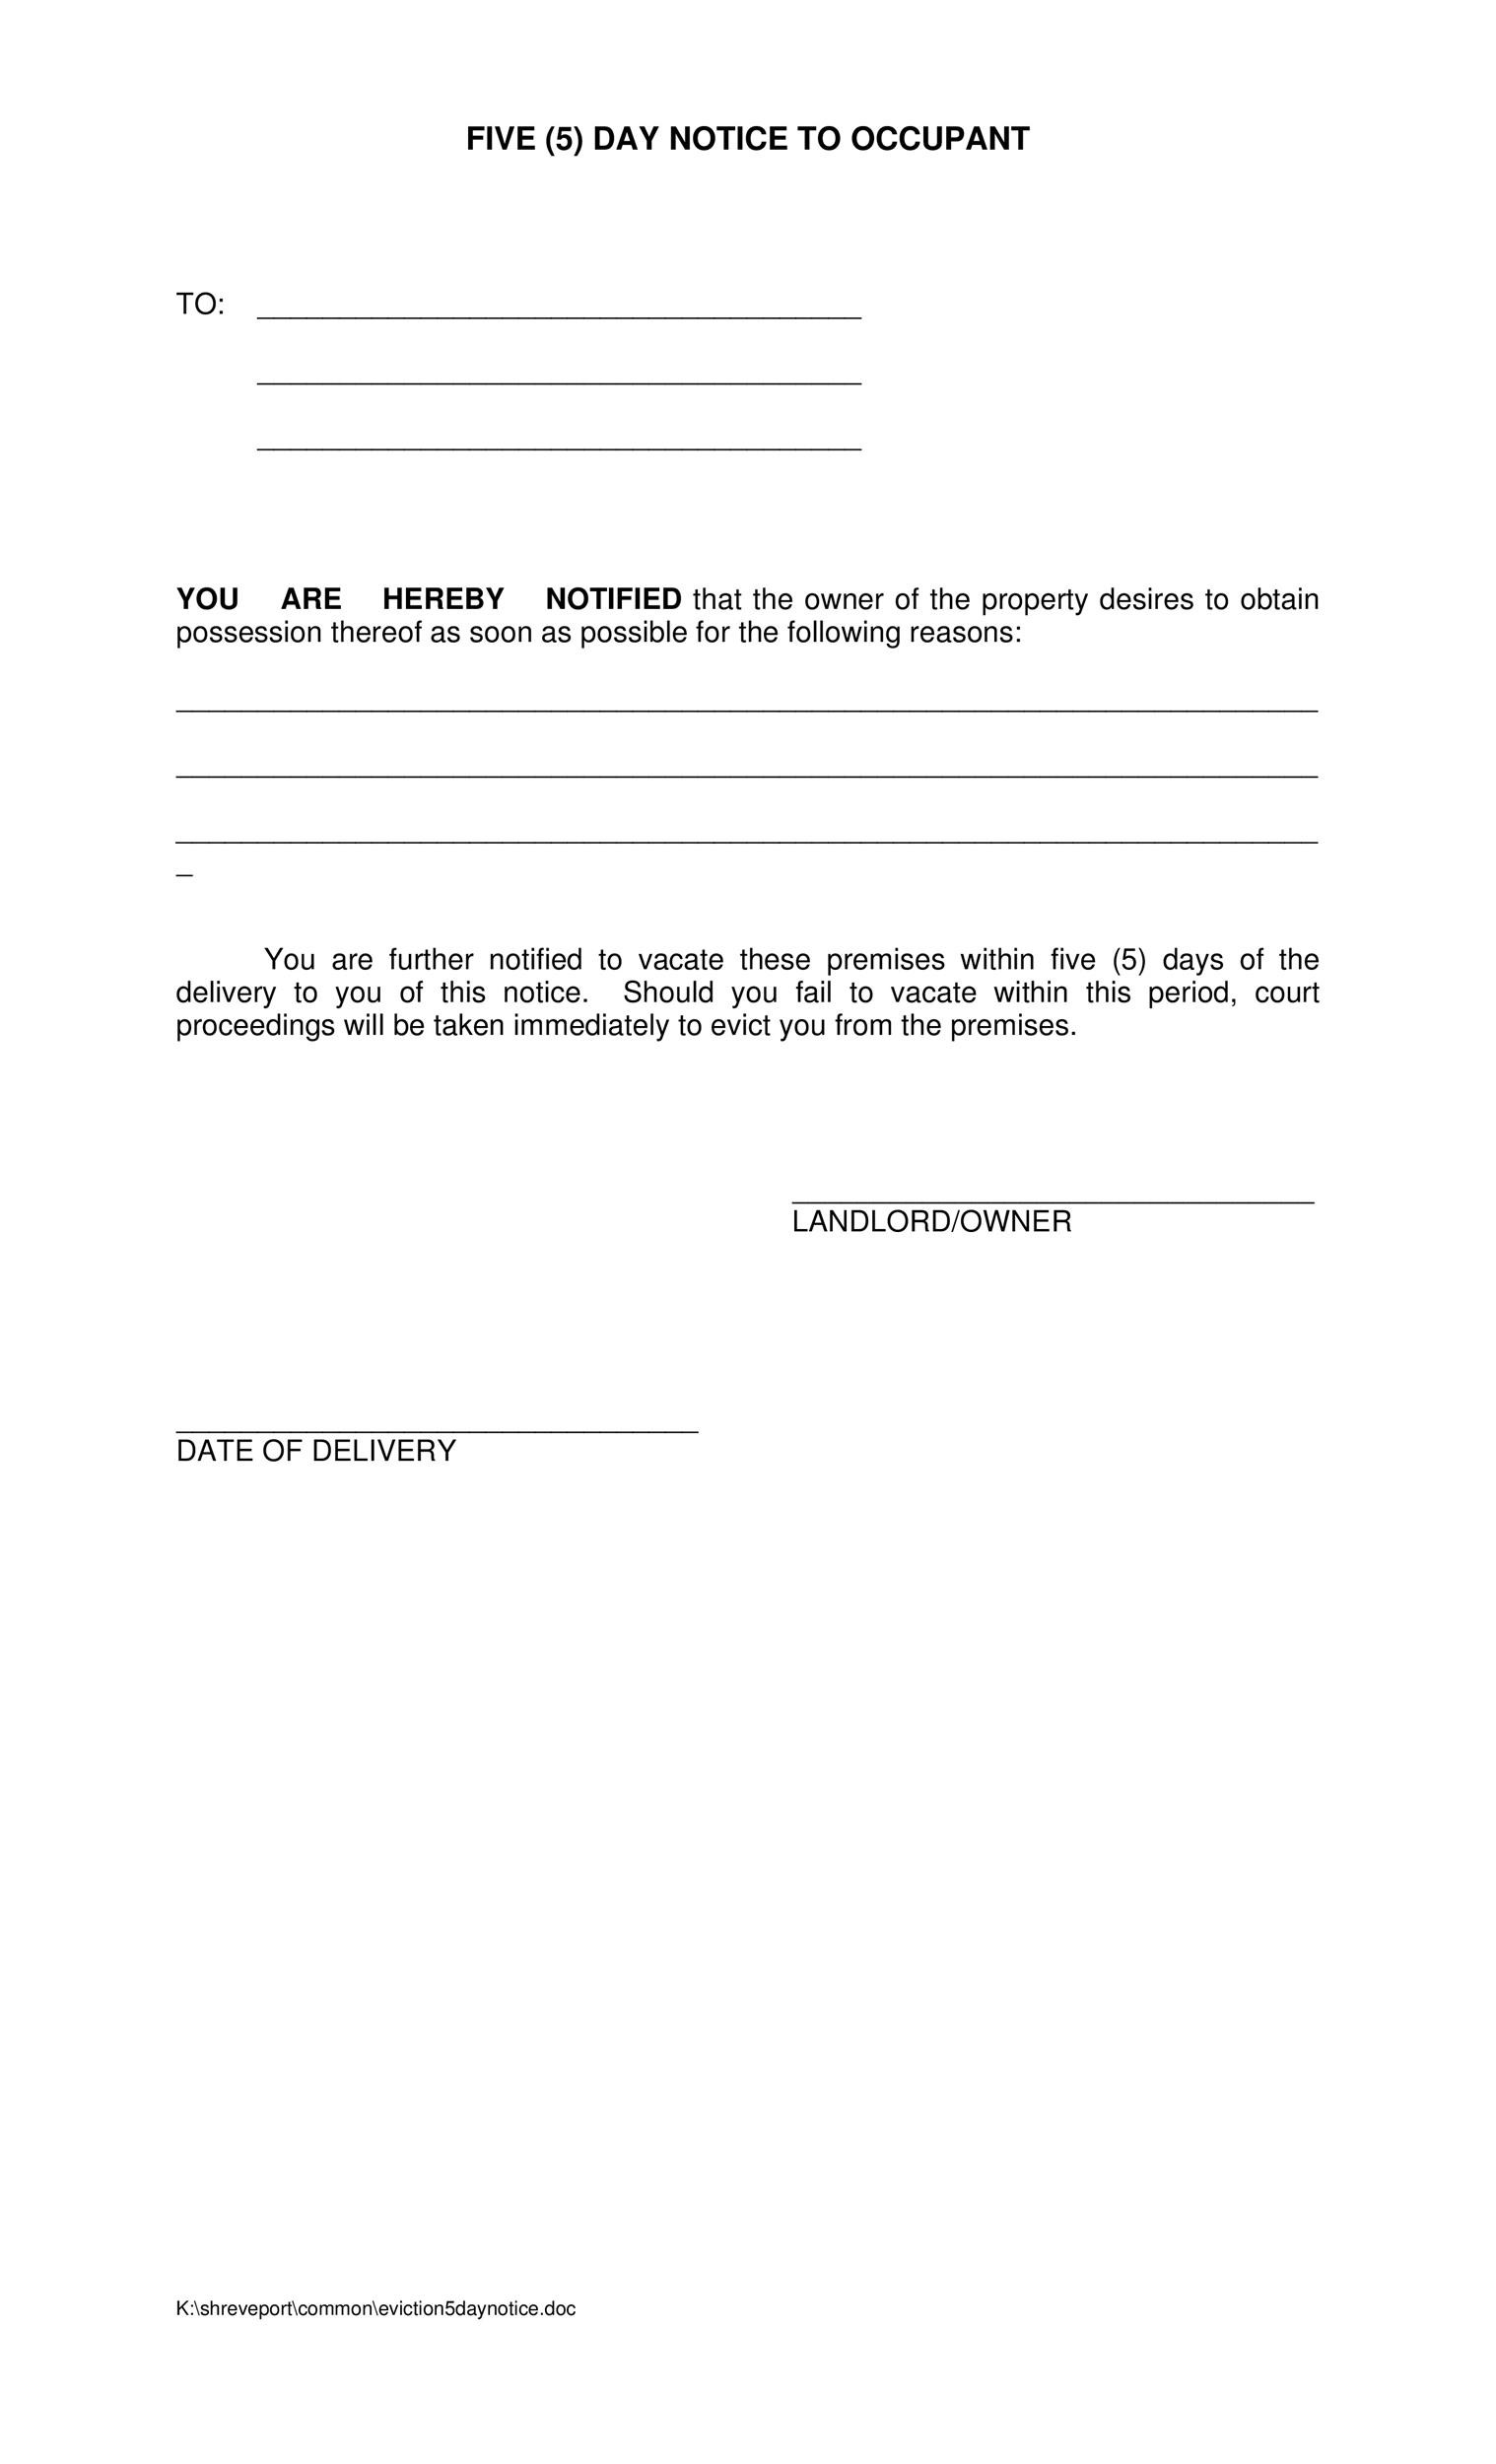 five day notice to occupant - Notice Of Lease Termination